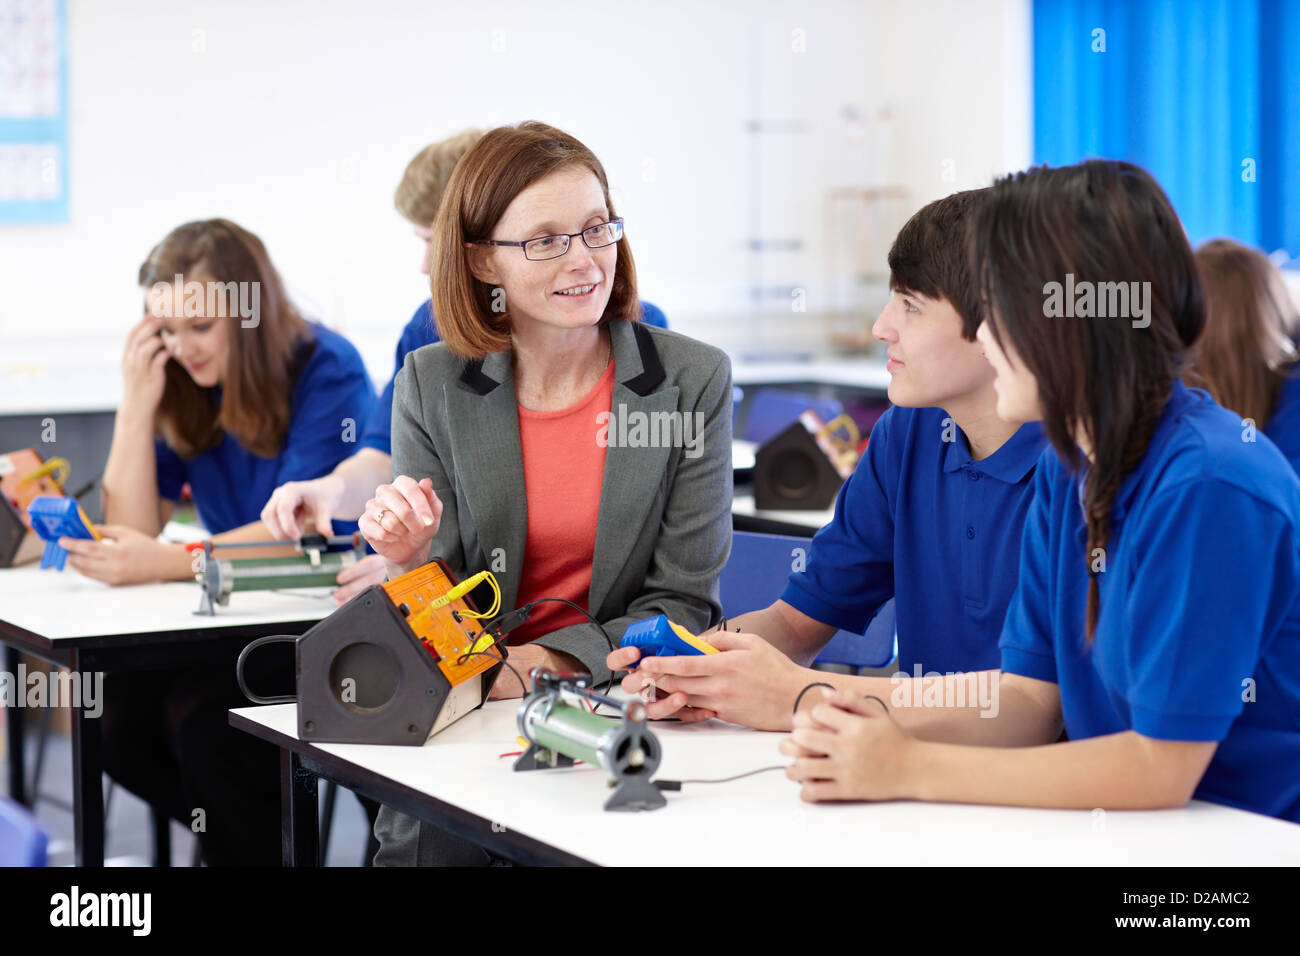 Teacher with students in science class - Stock Image